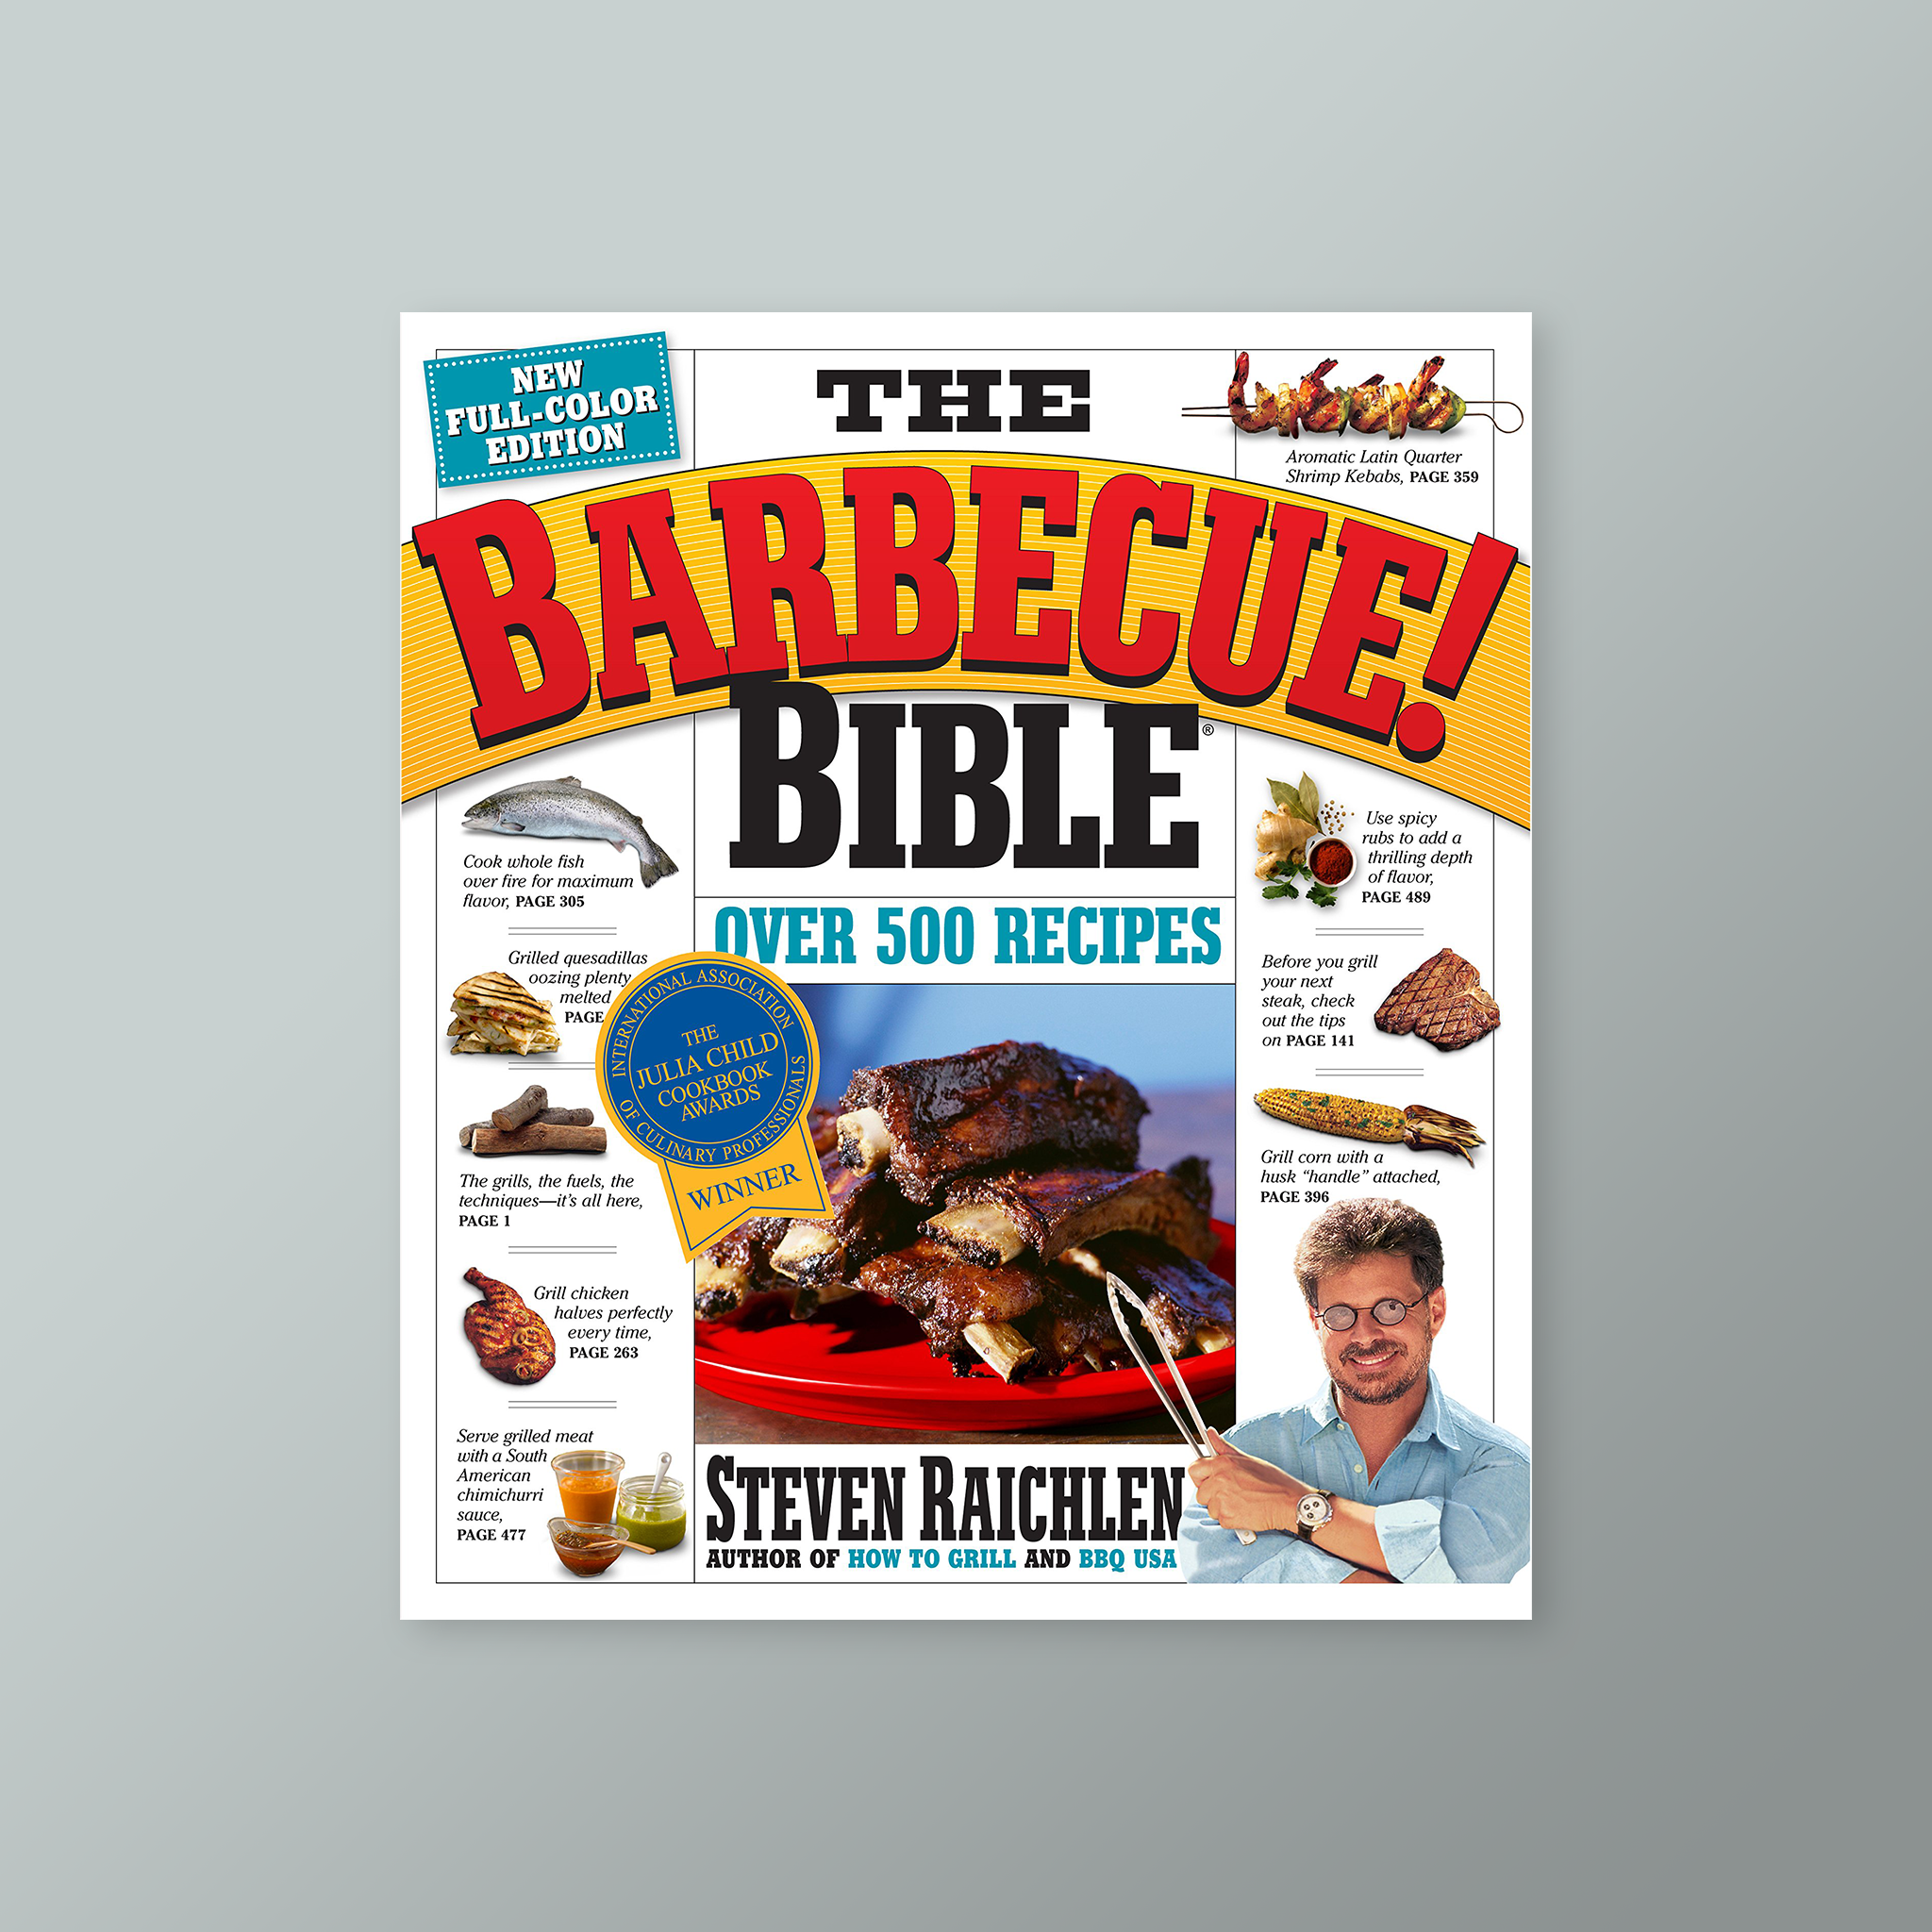 BBQ Bible - first book about barbecuing and grilling. In a way the primer, it does take international look at barbecuing and grilling around the world. Difference between BBQ and Gilling